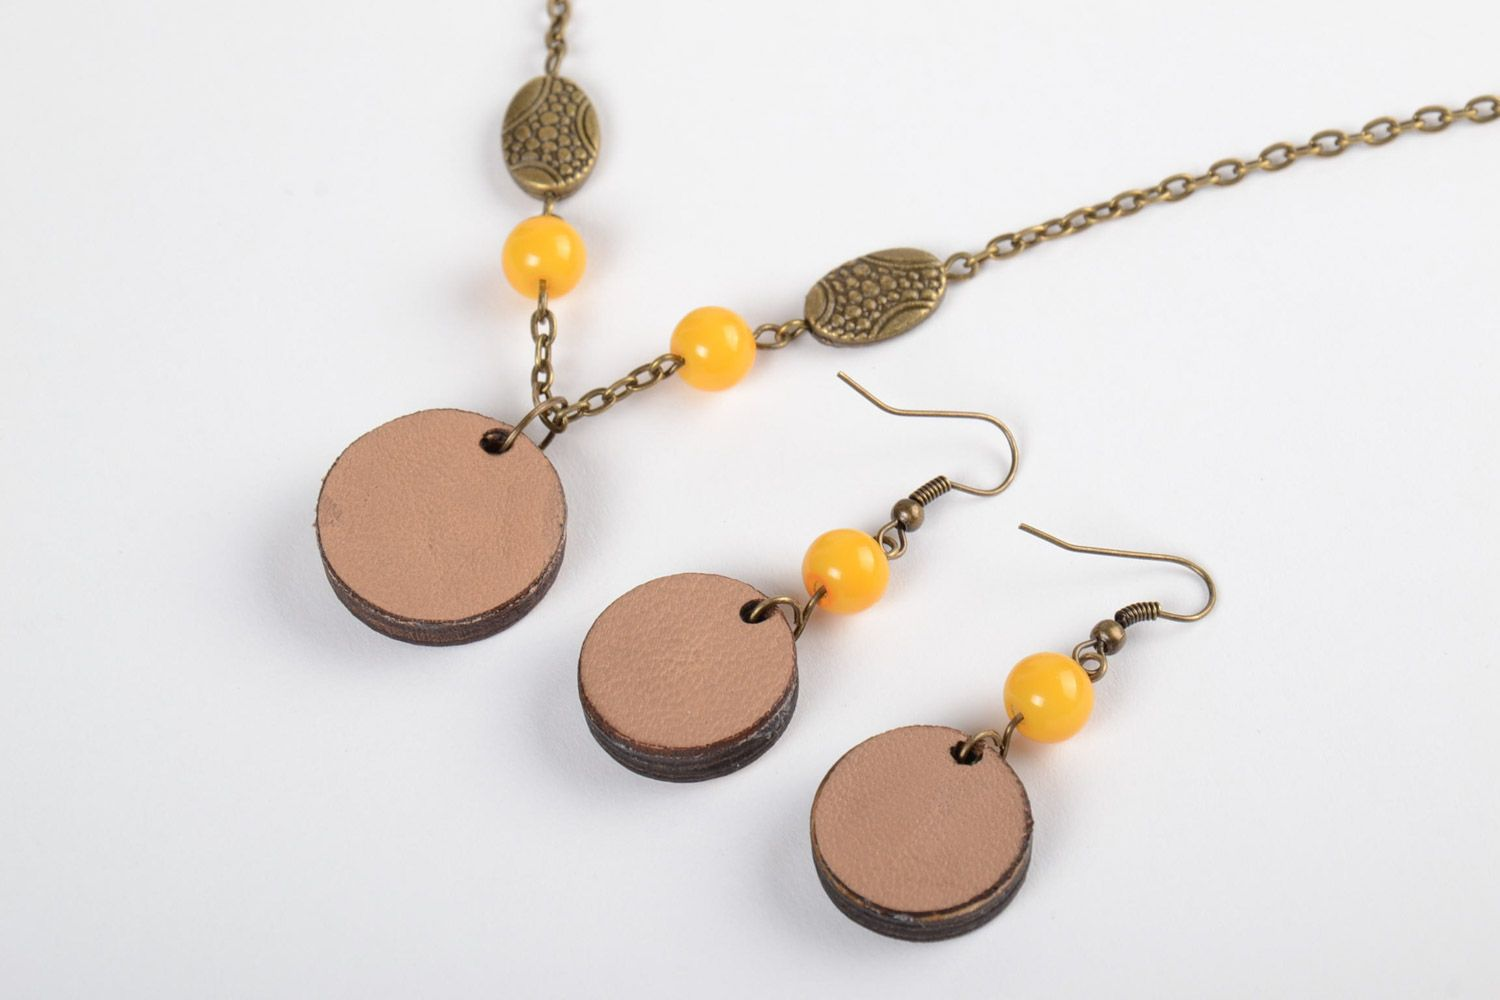 Handmade plywood jewellery round earrings and pendant with embroidery in ethnic style photo 3